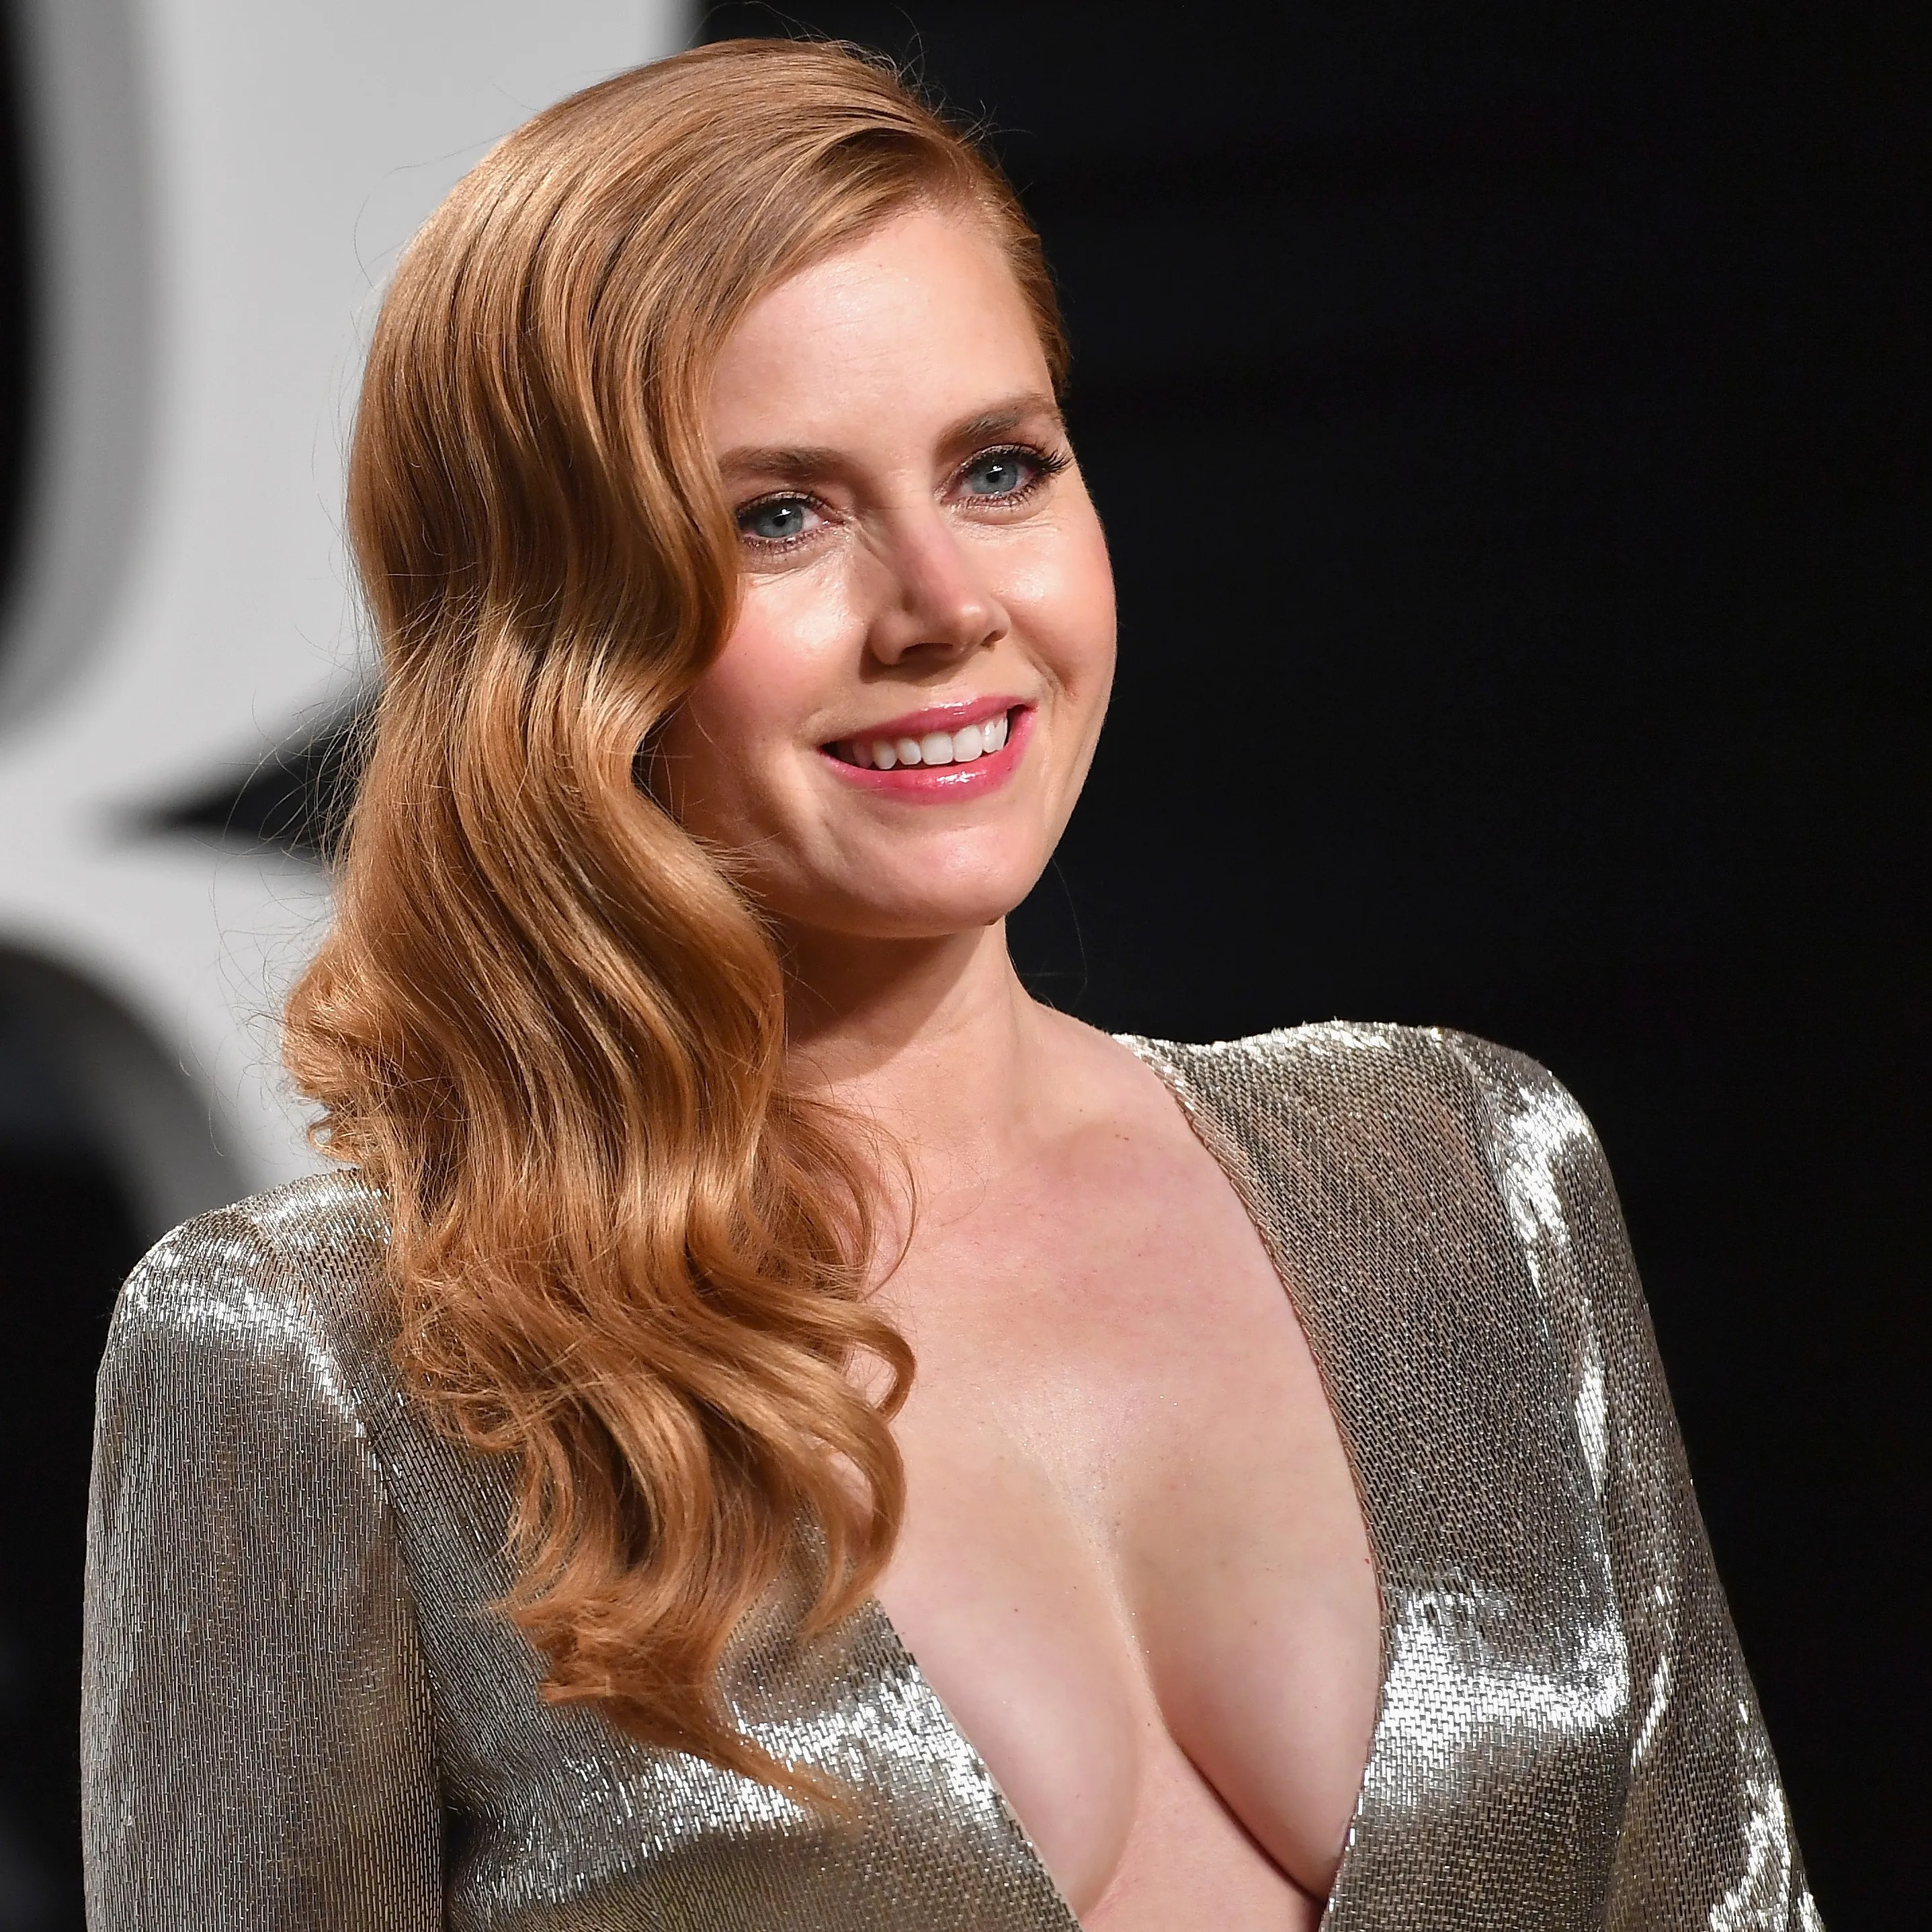 Amy Adams New Hbo Show Looks Like A Creepy Mix Of Big Little Lies And Gone Girl Glamour